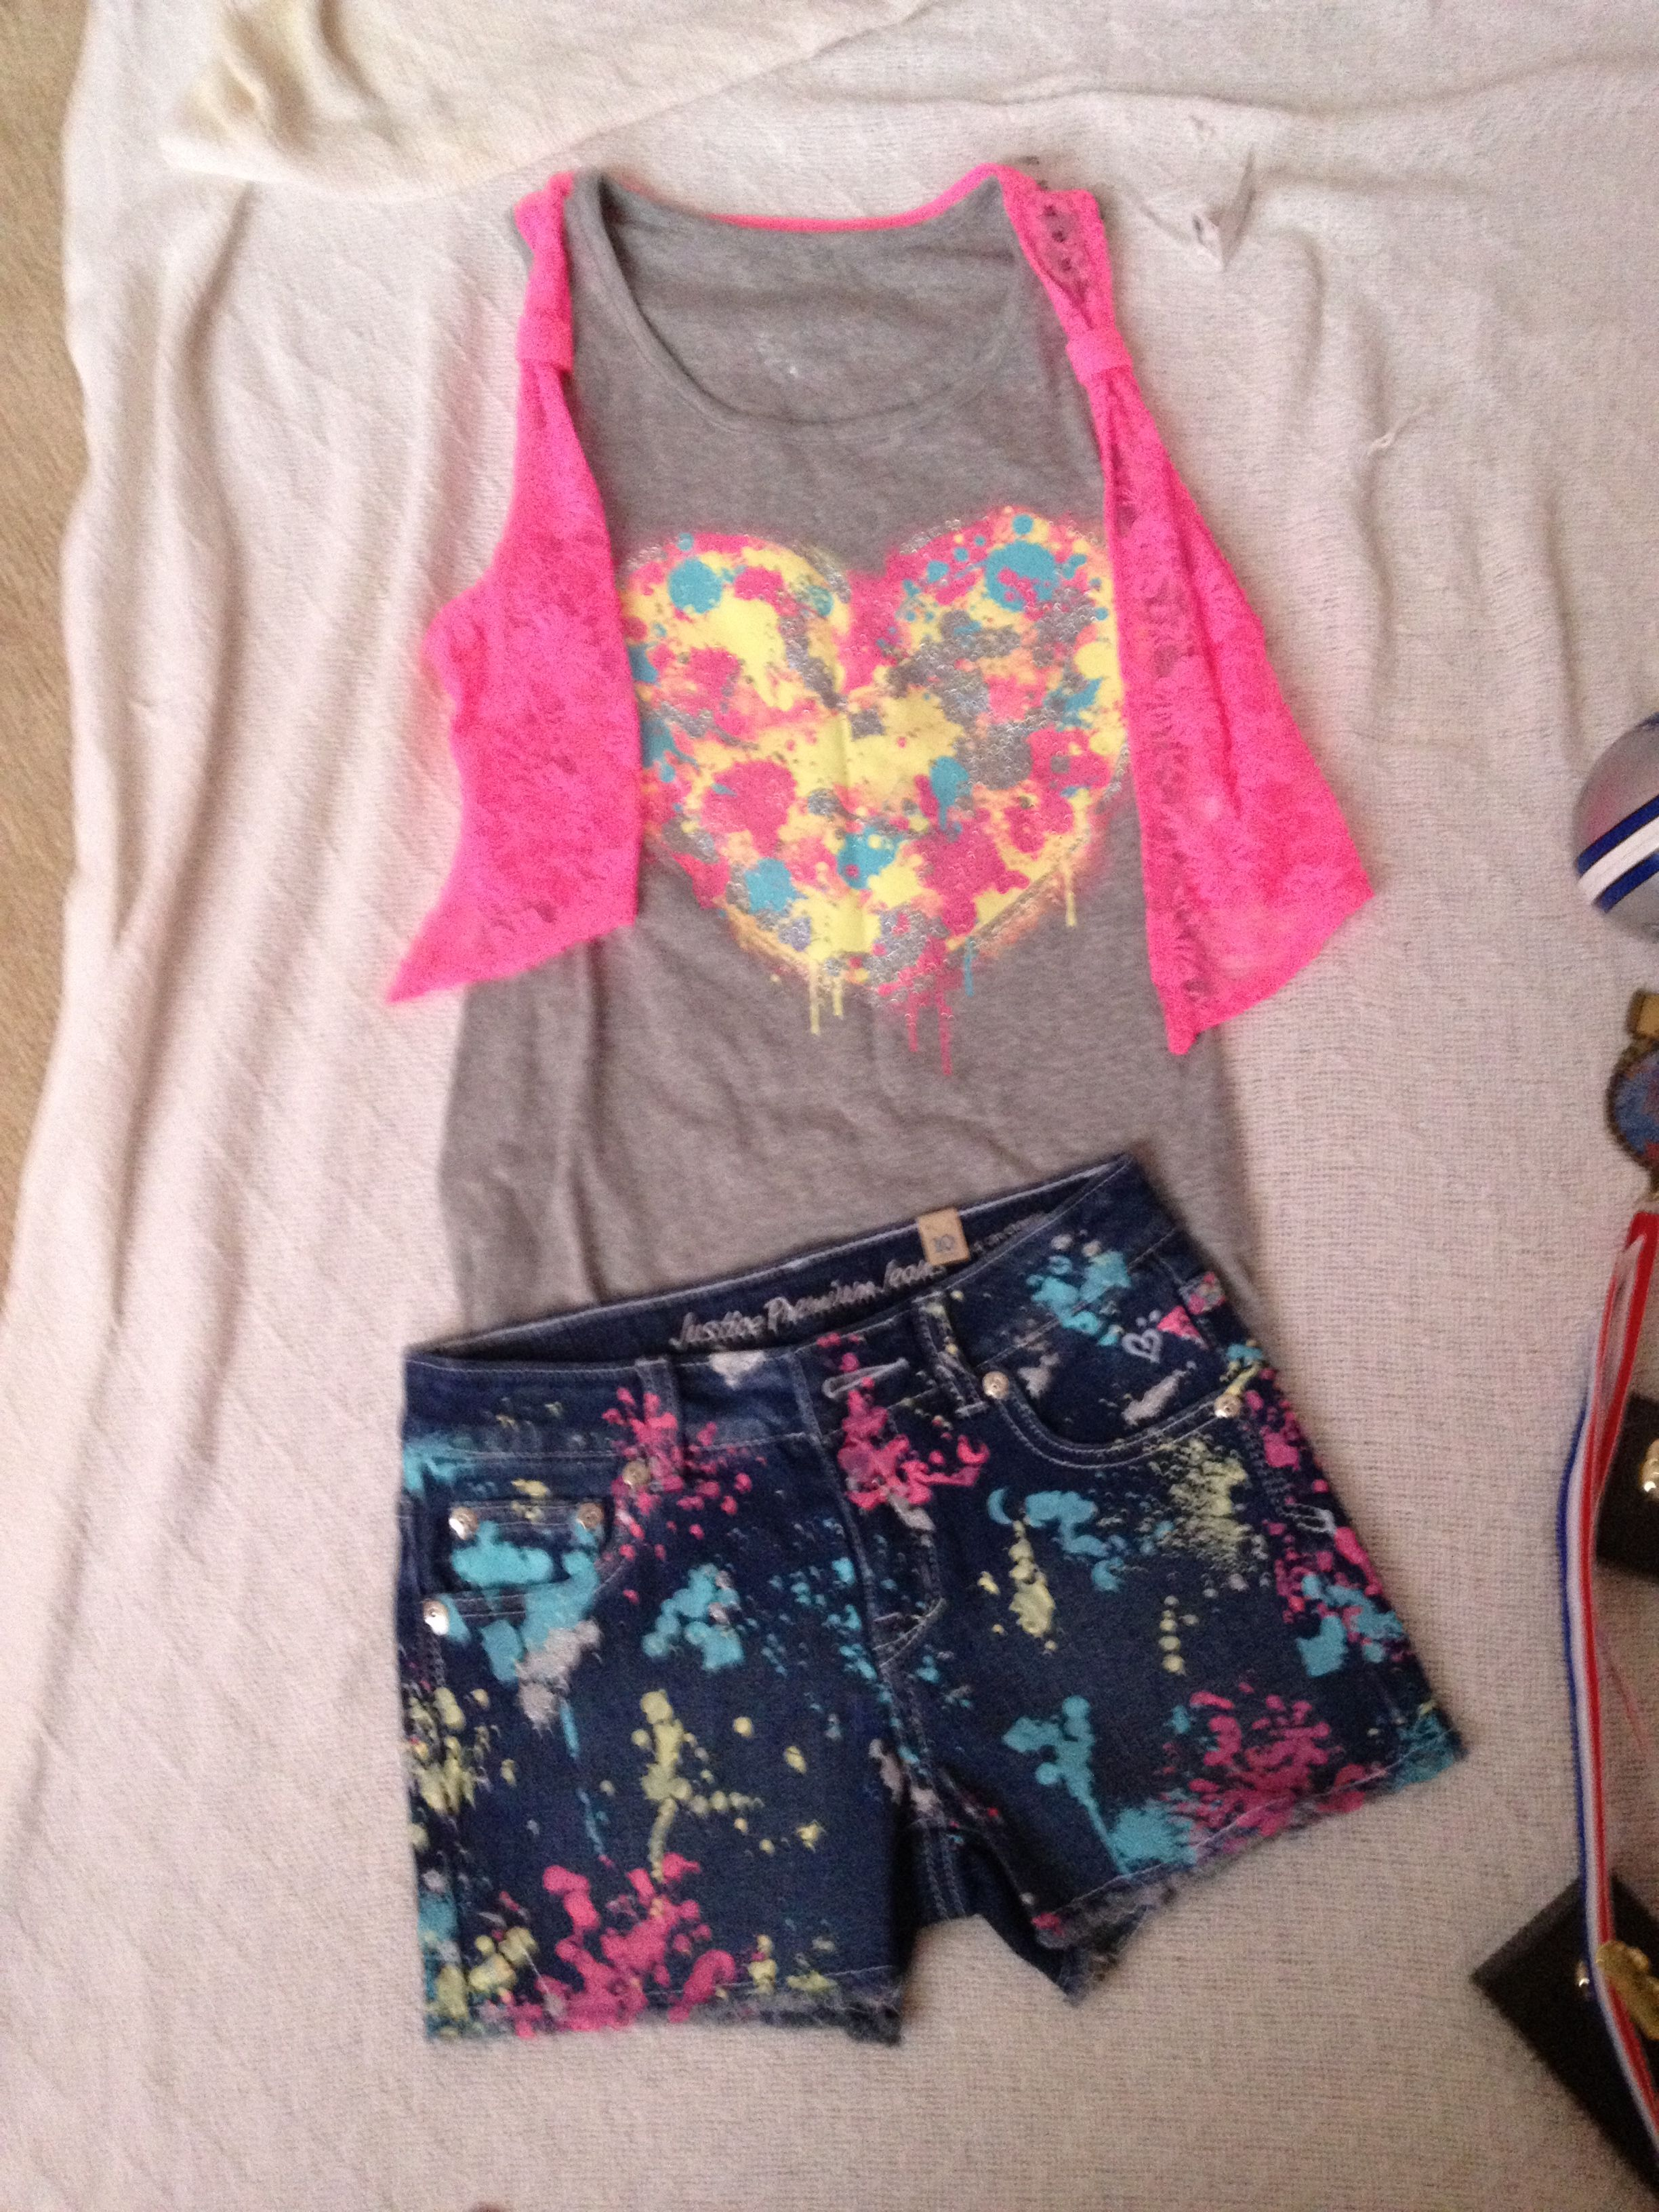 Pin By Courtney Rae On Clothing Justice Clothing Kids Outfits Childrens Fashion